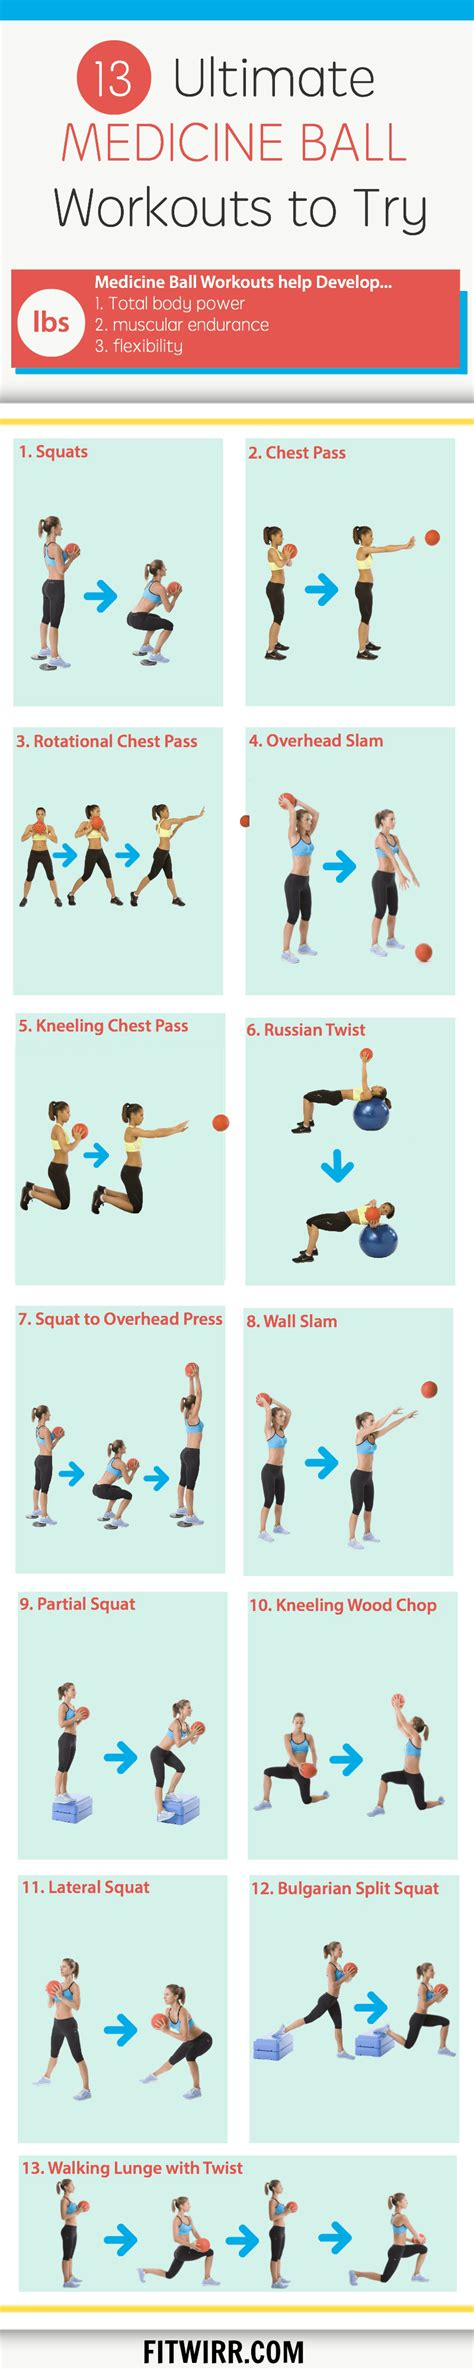 printable exercise ball routines 13 printable medicine ball workouts for your core